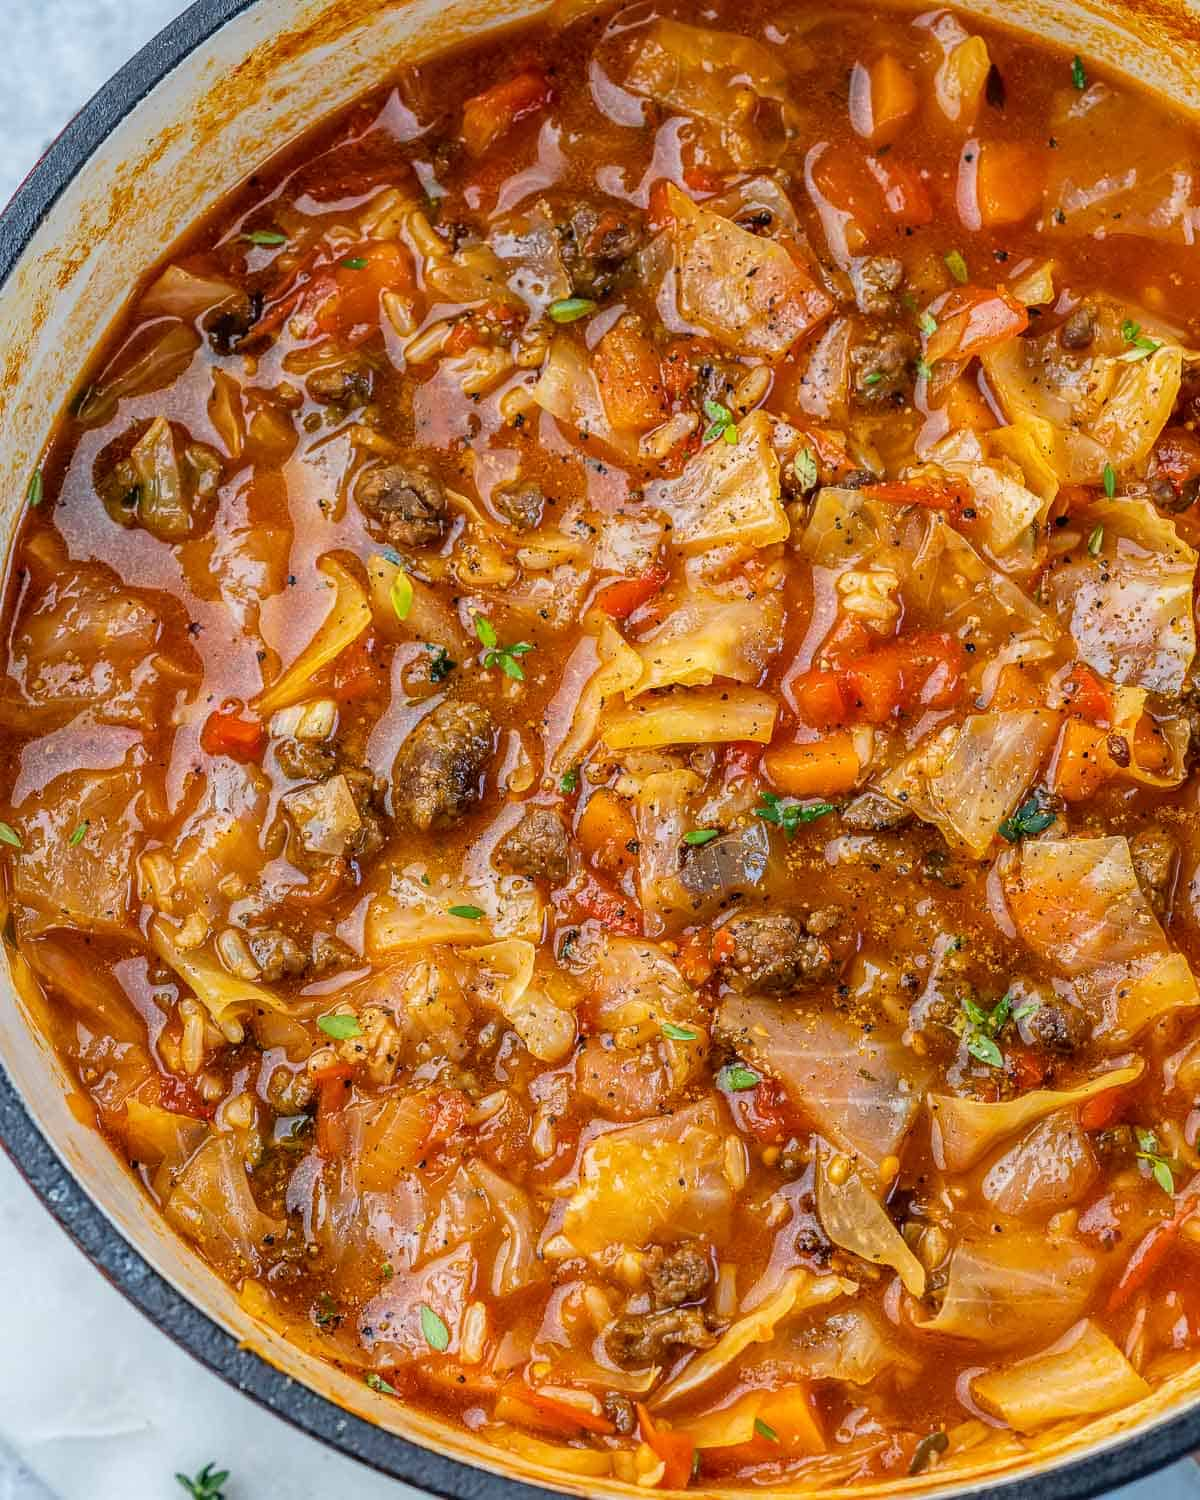 Dutch oven with finished cabbage roll soup.